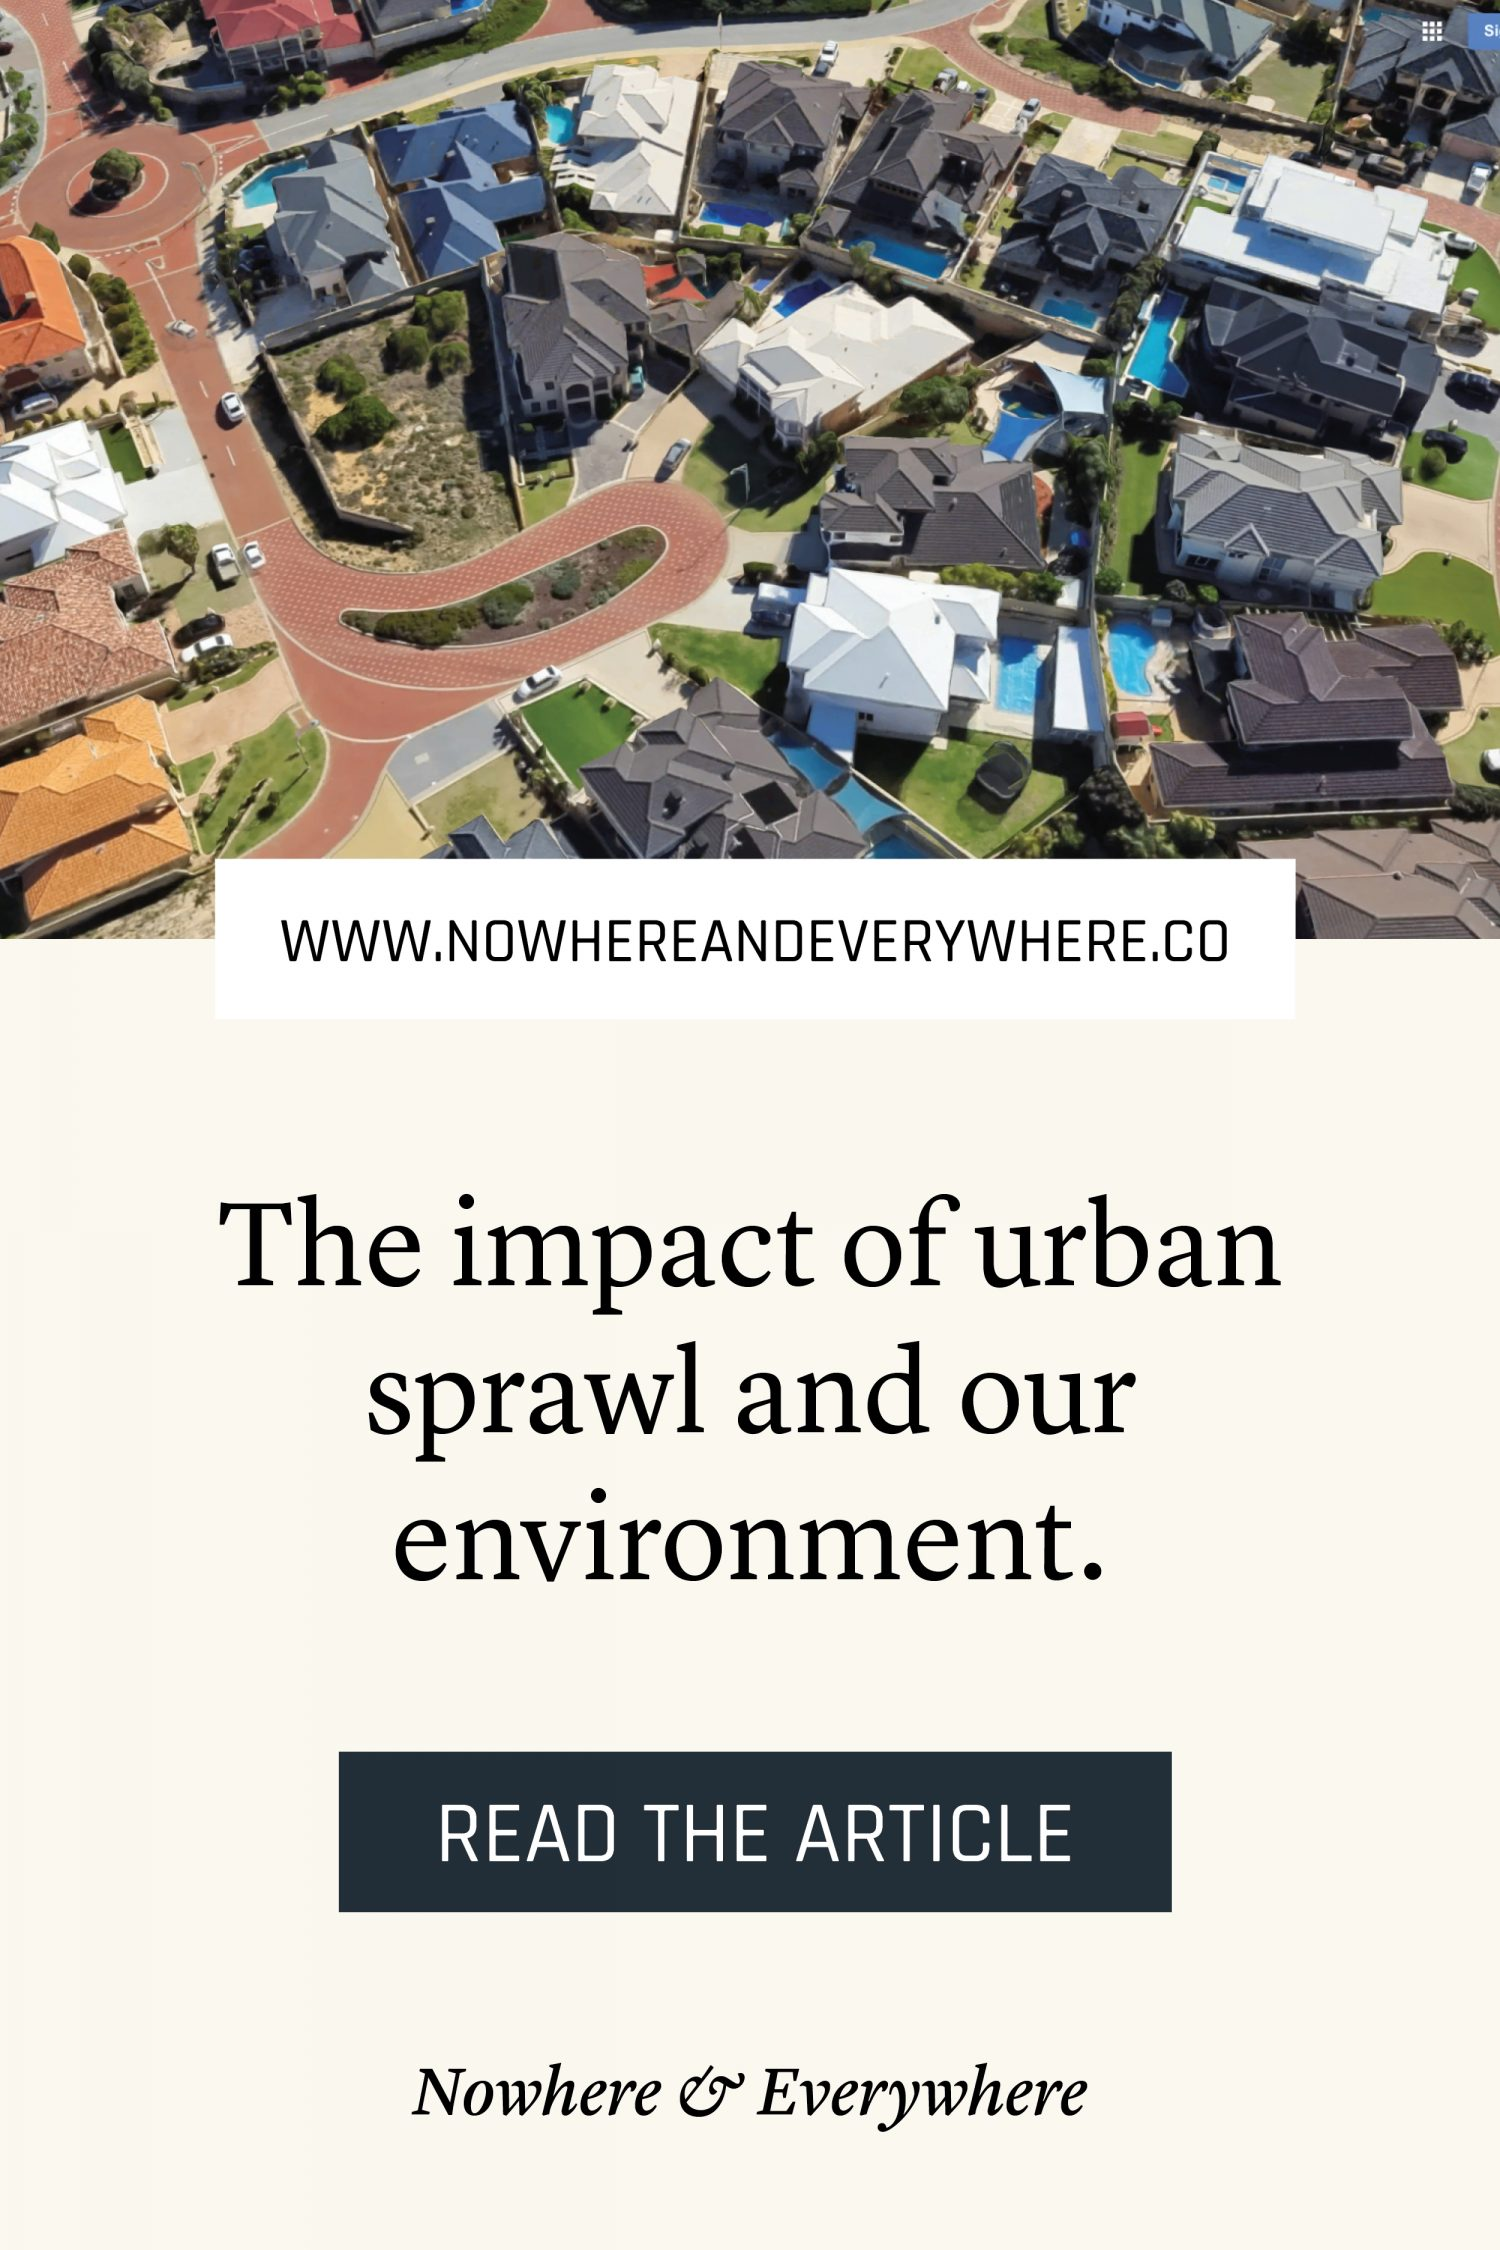 The longest suburban sprawl in the world Nowhere & Everywhere Sustainable Travel